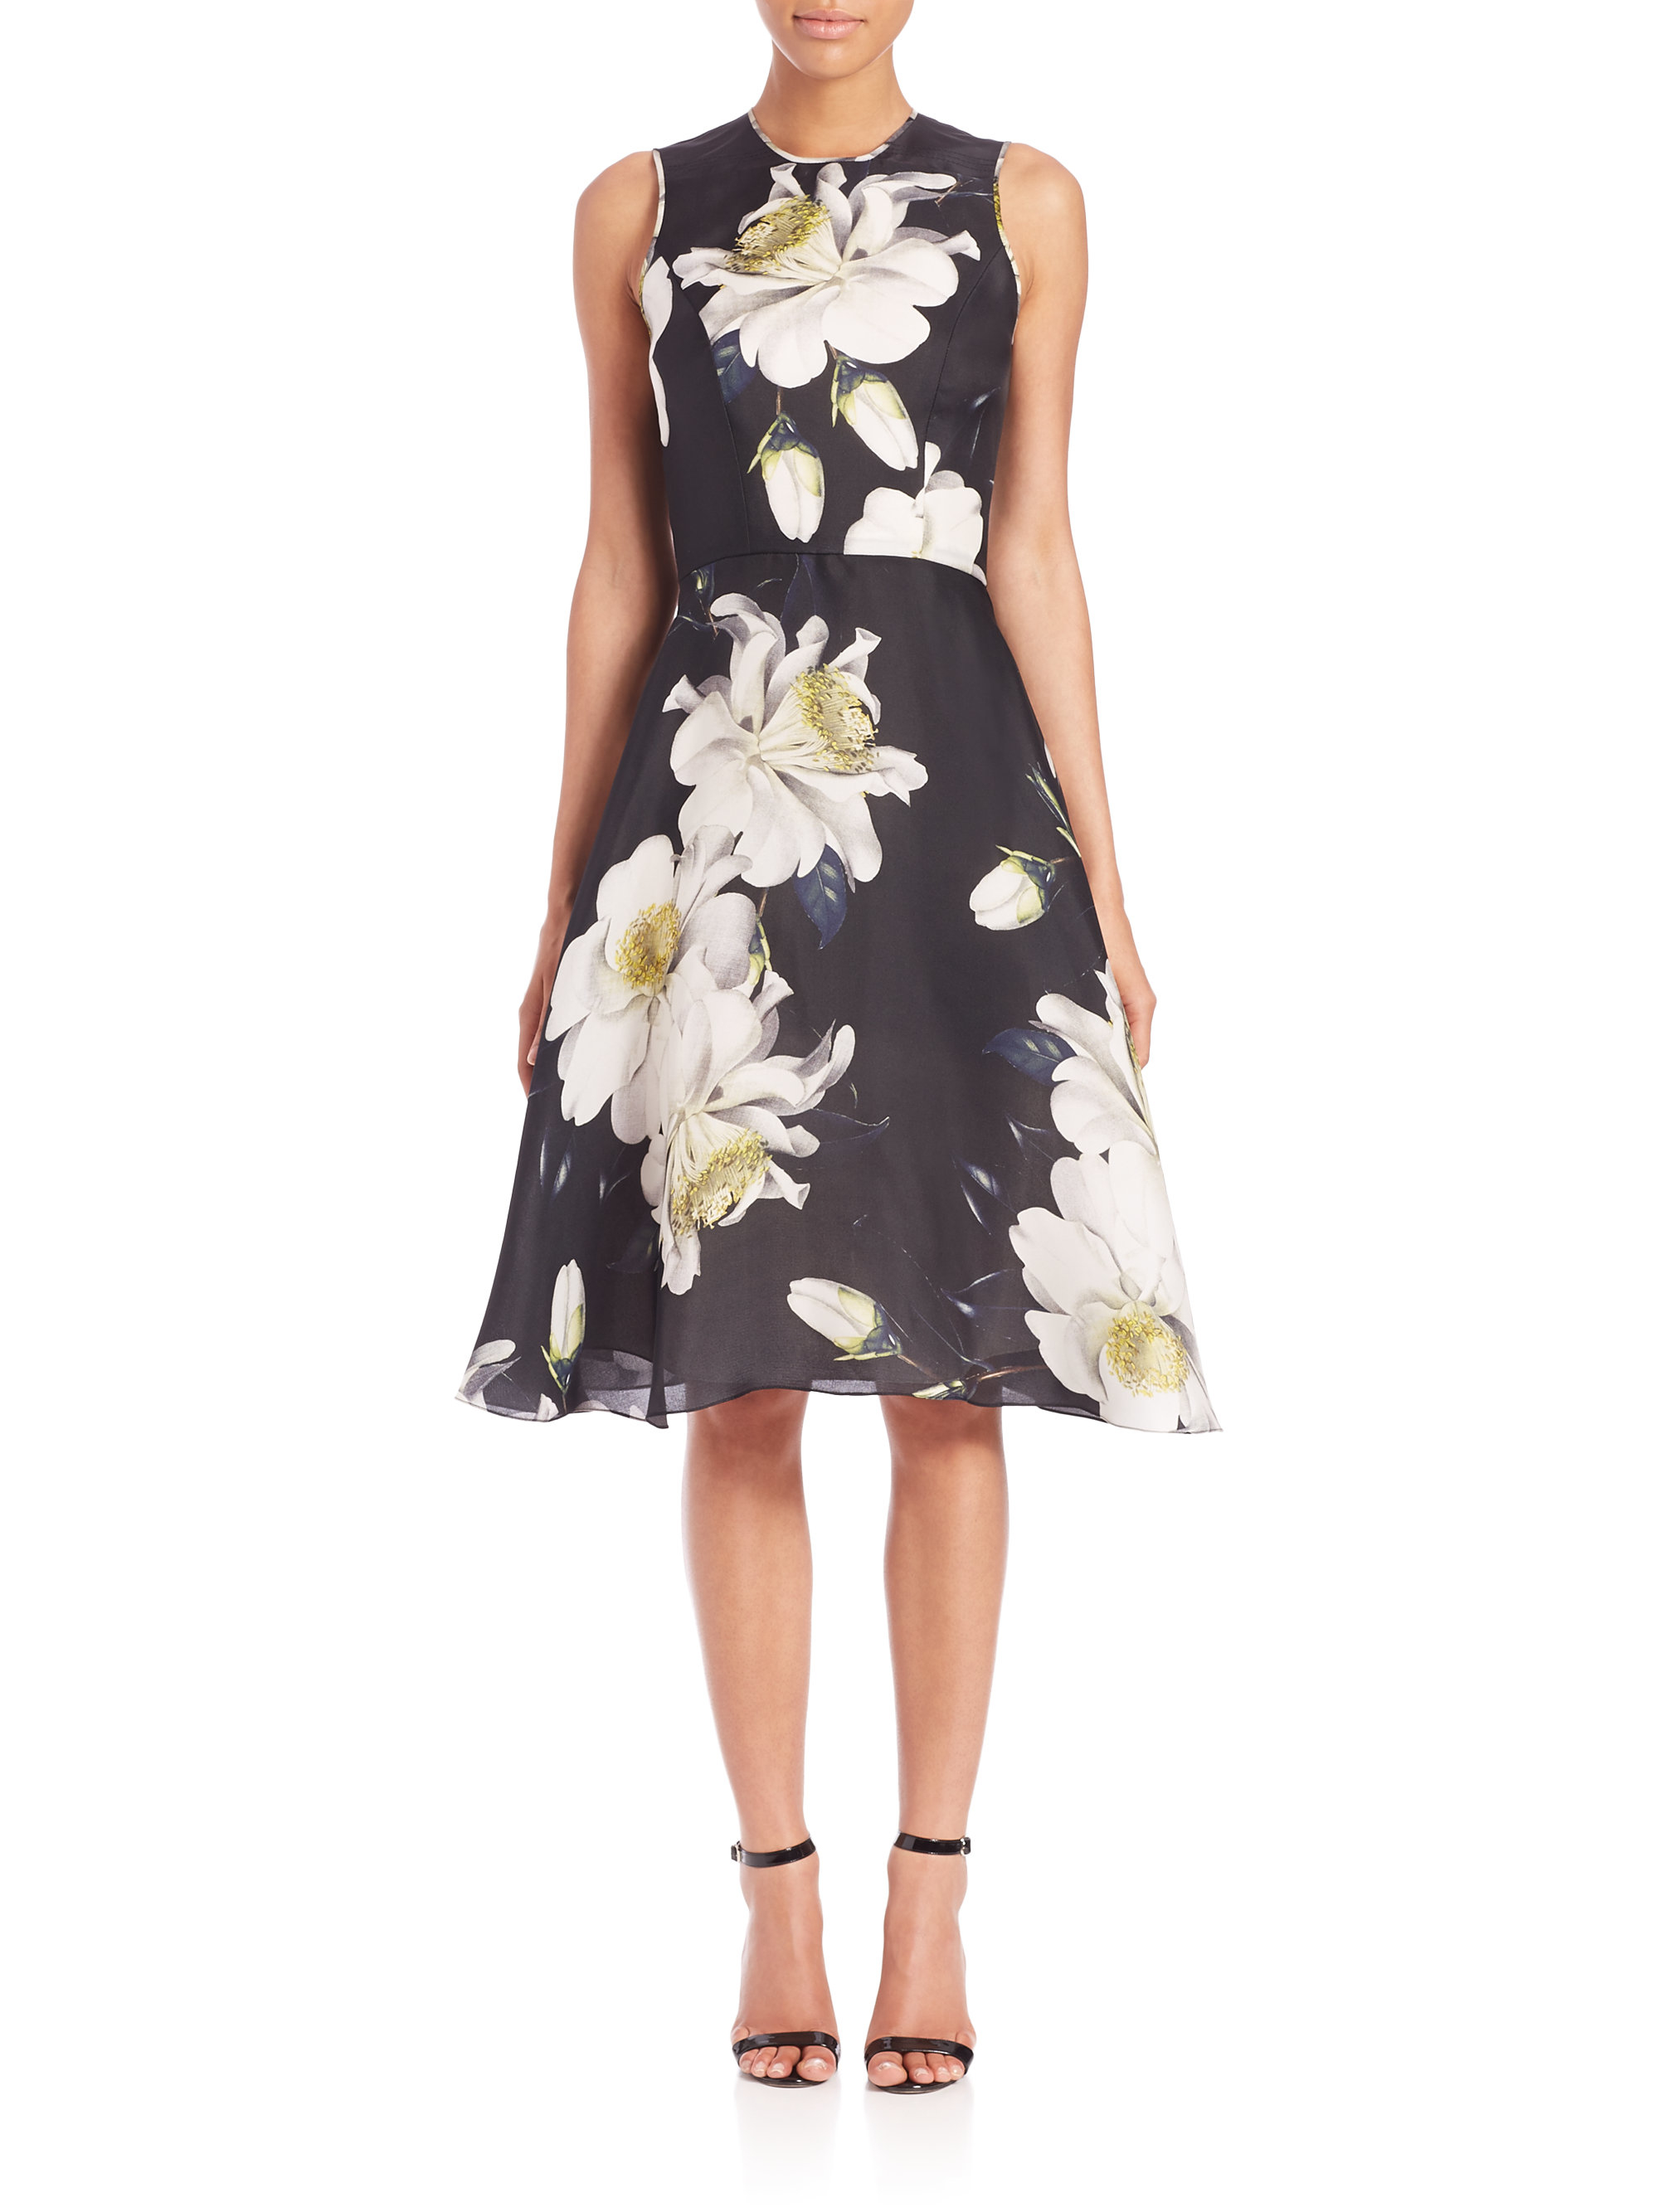 Lyst - Carolina Herrera Gardenia Gazaar Silk Cocktail Dress in Black